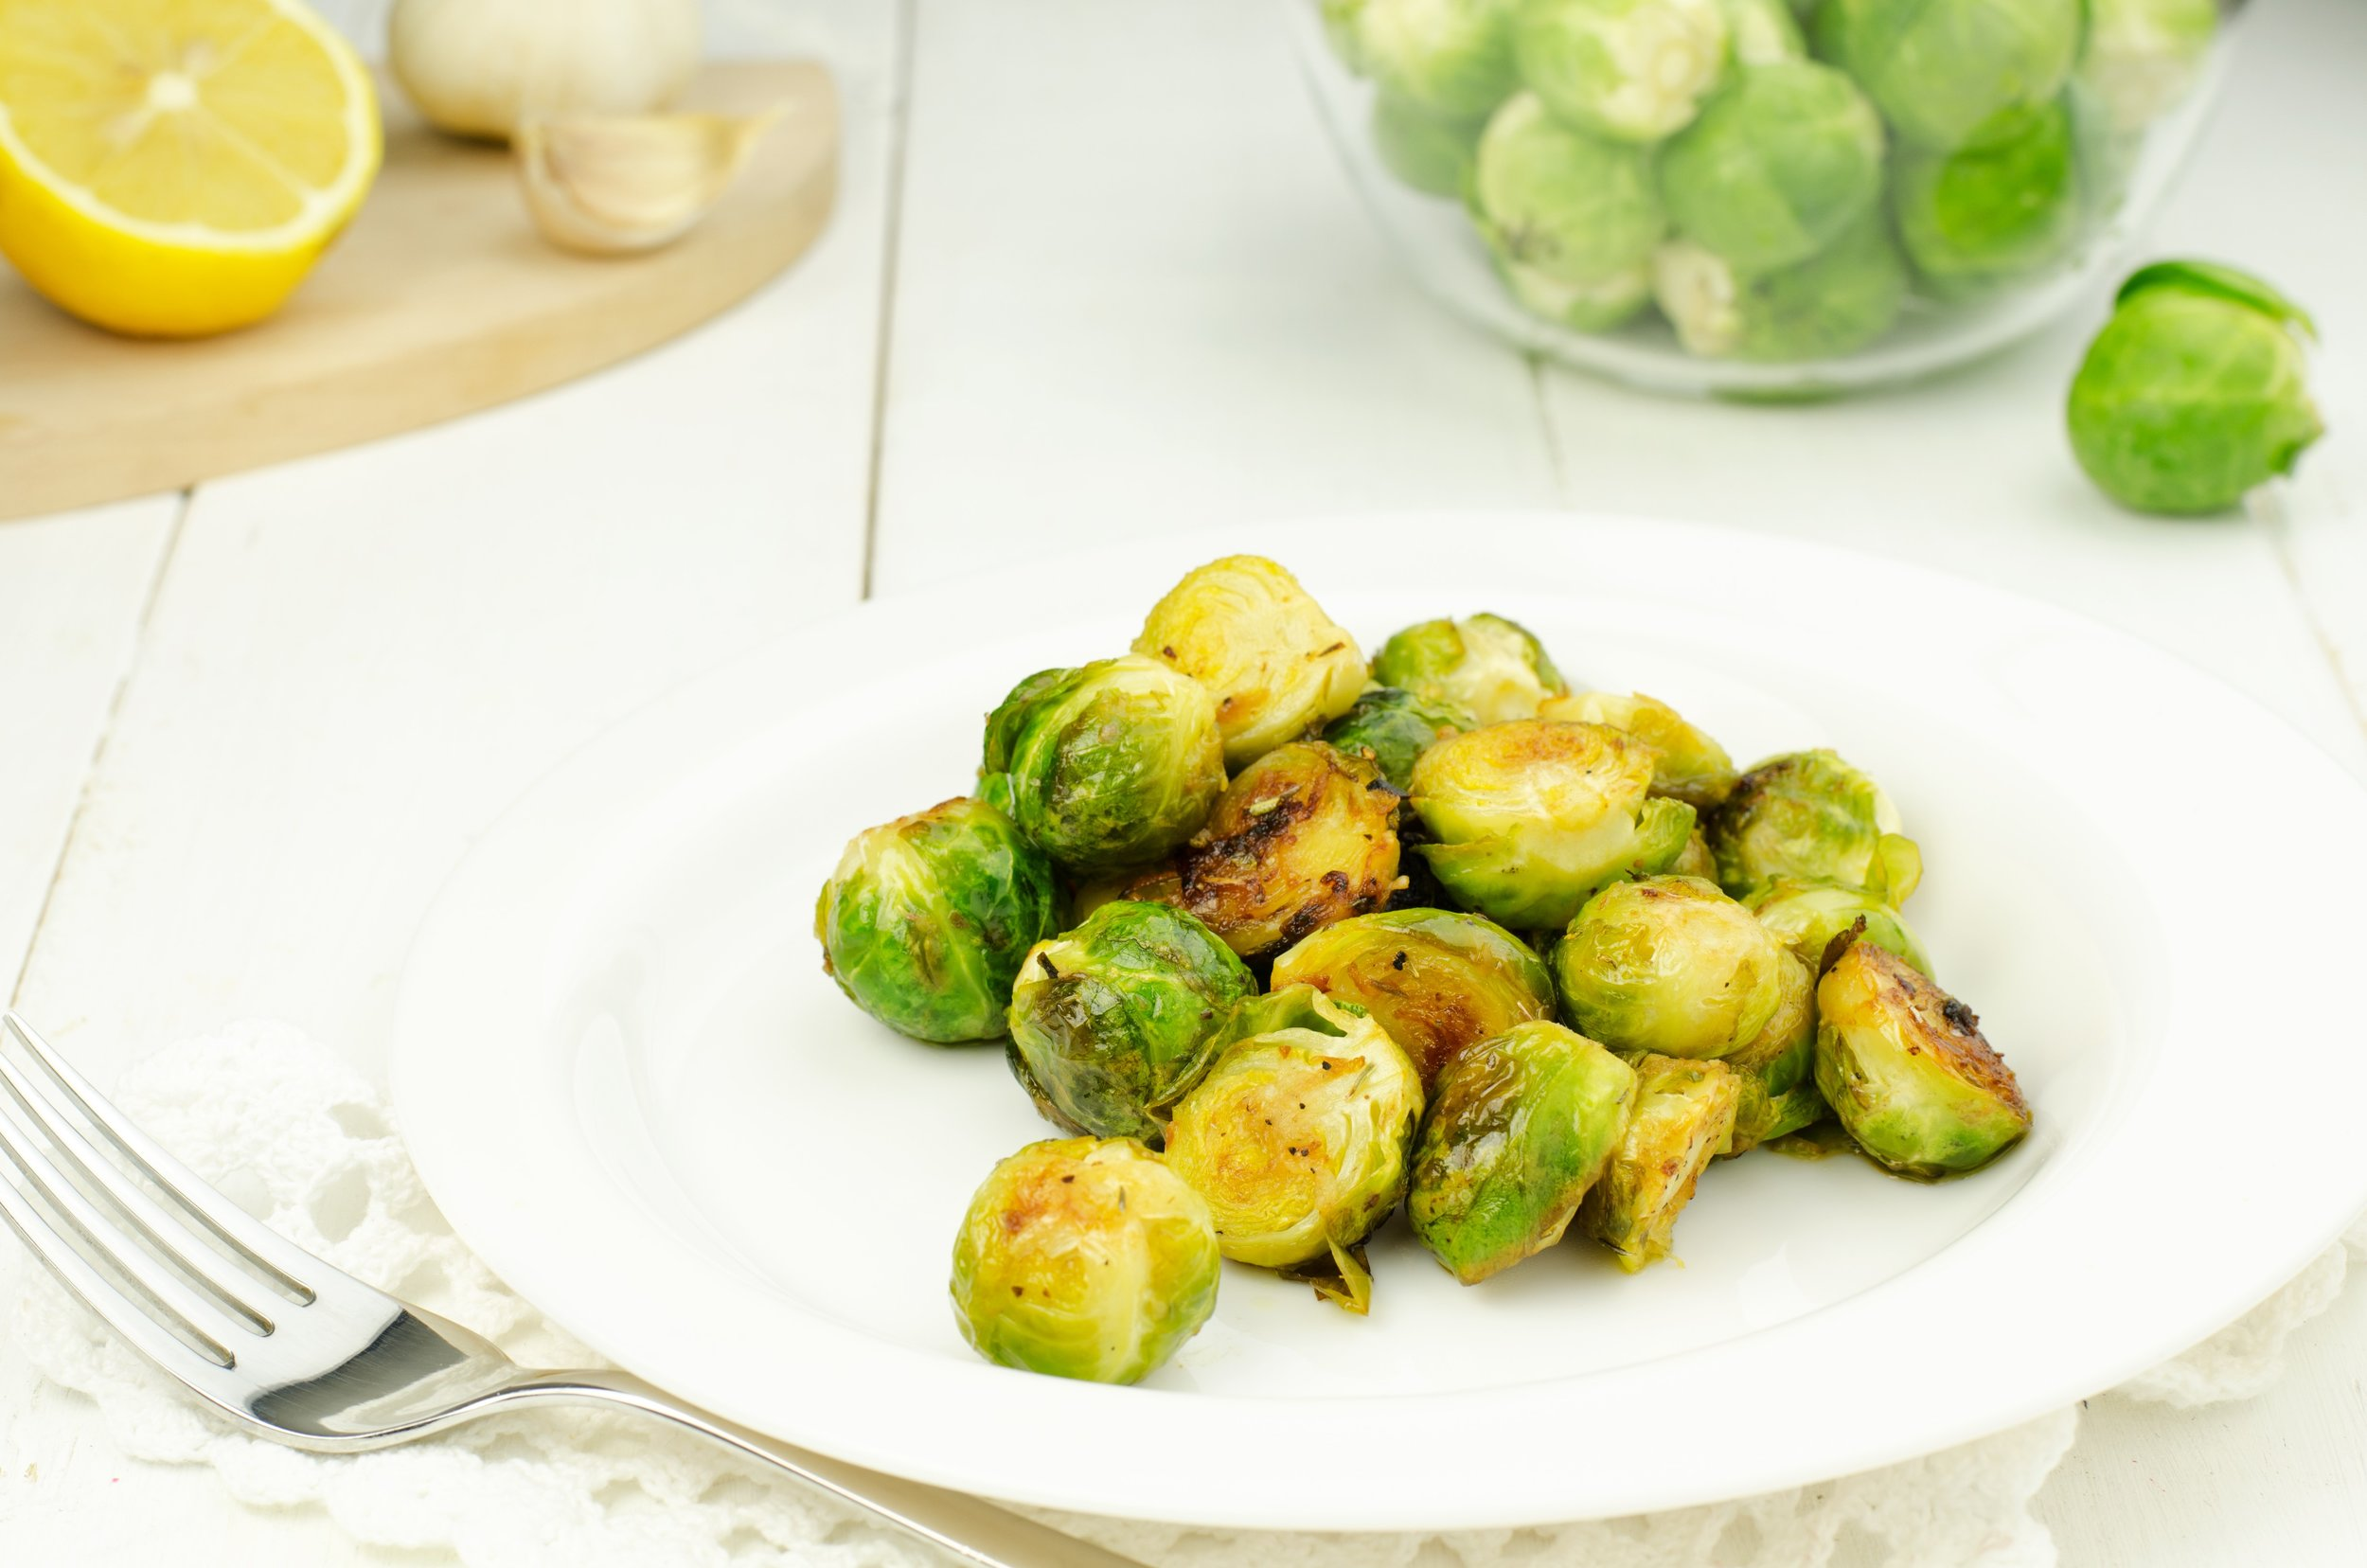 brussels sprouts.jpg